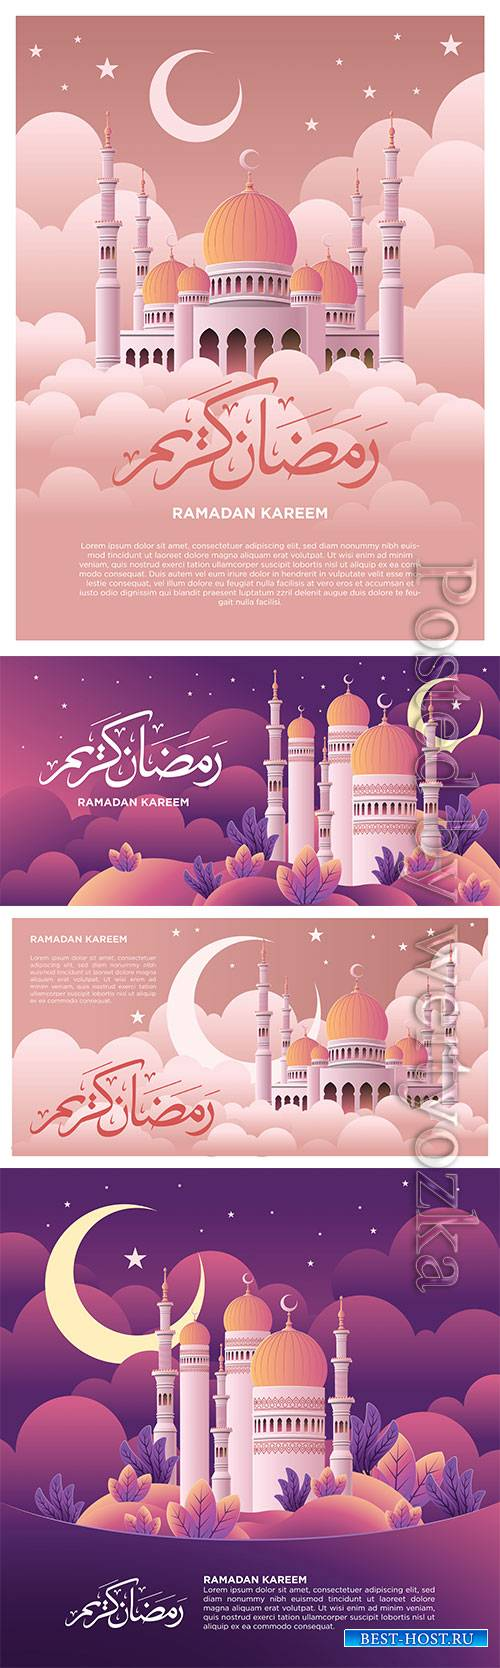 Mosque on the sky illustration for Ramadan Kareem vector background